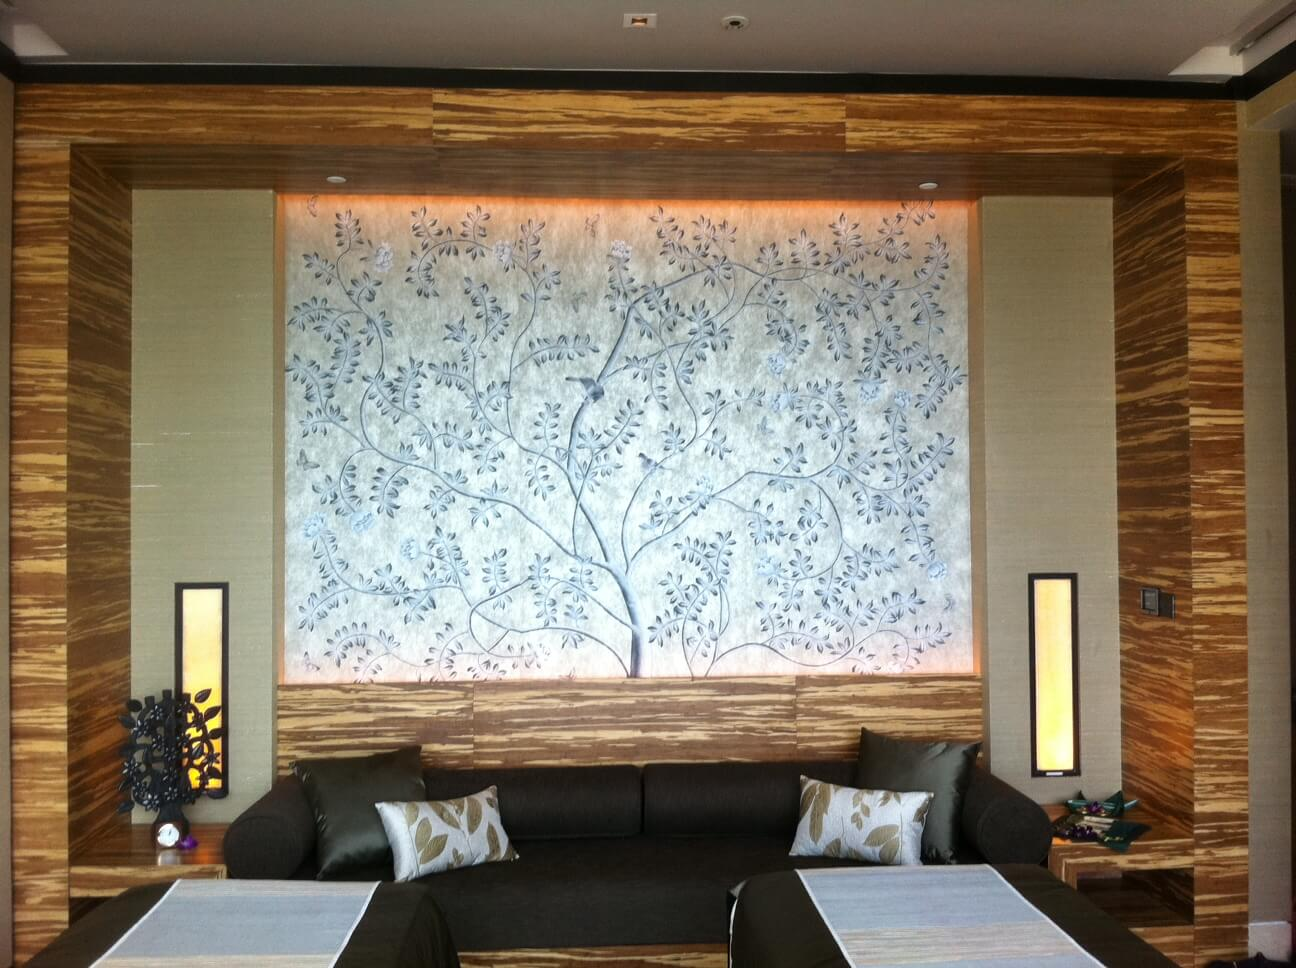 A project with Banyan Tree for their Spa at MBS